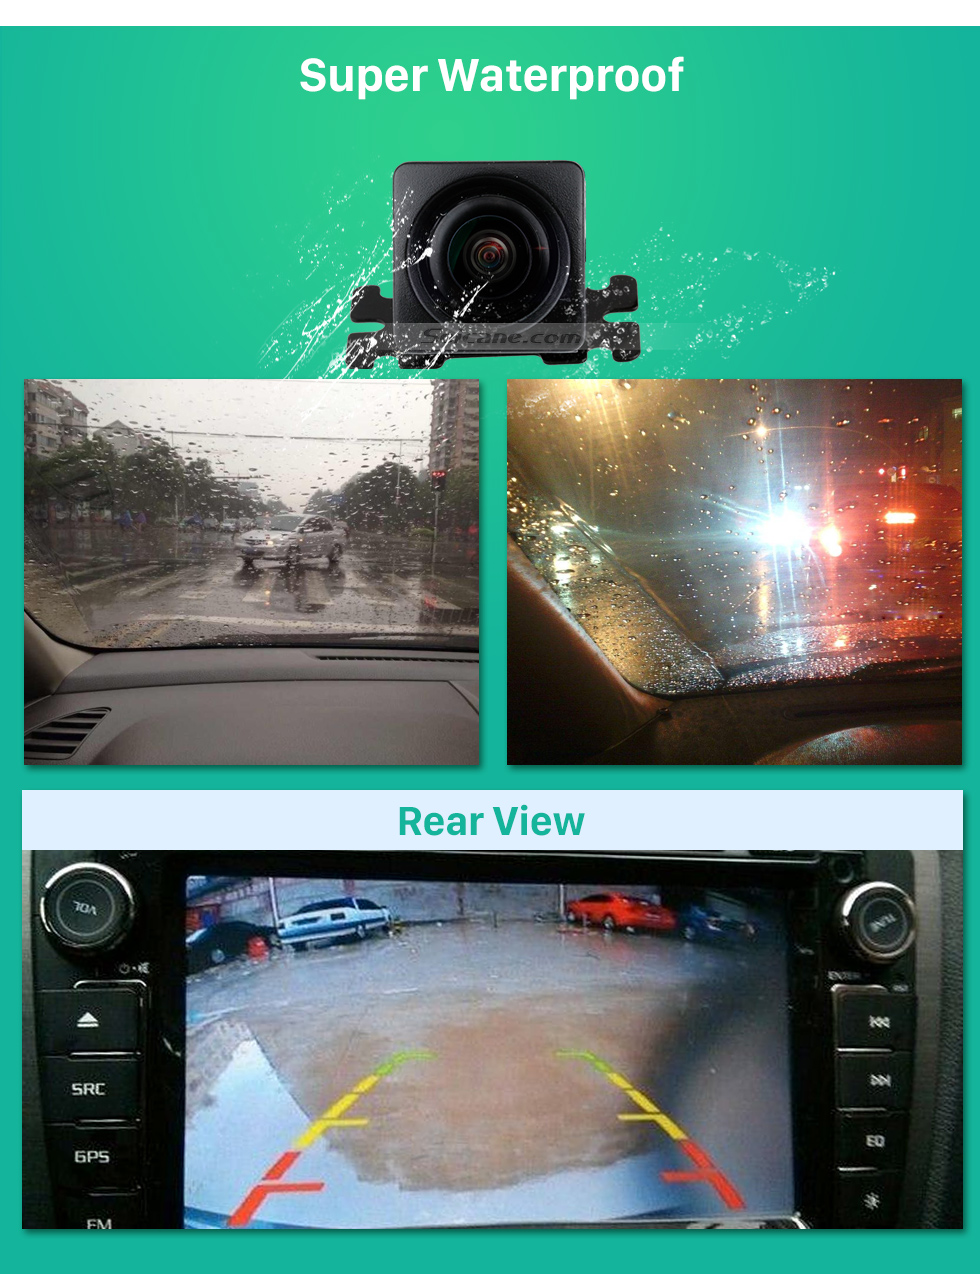 Super Waterproof Seicane HD Car Rearview Camera for aftermarket radio